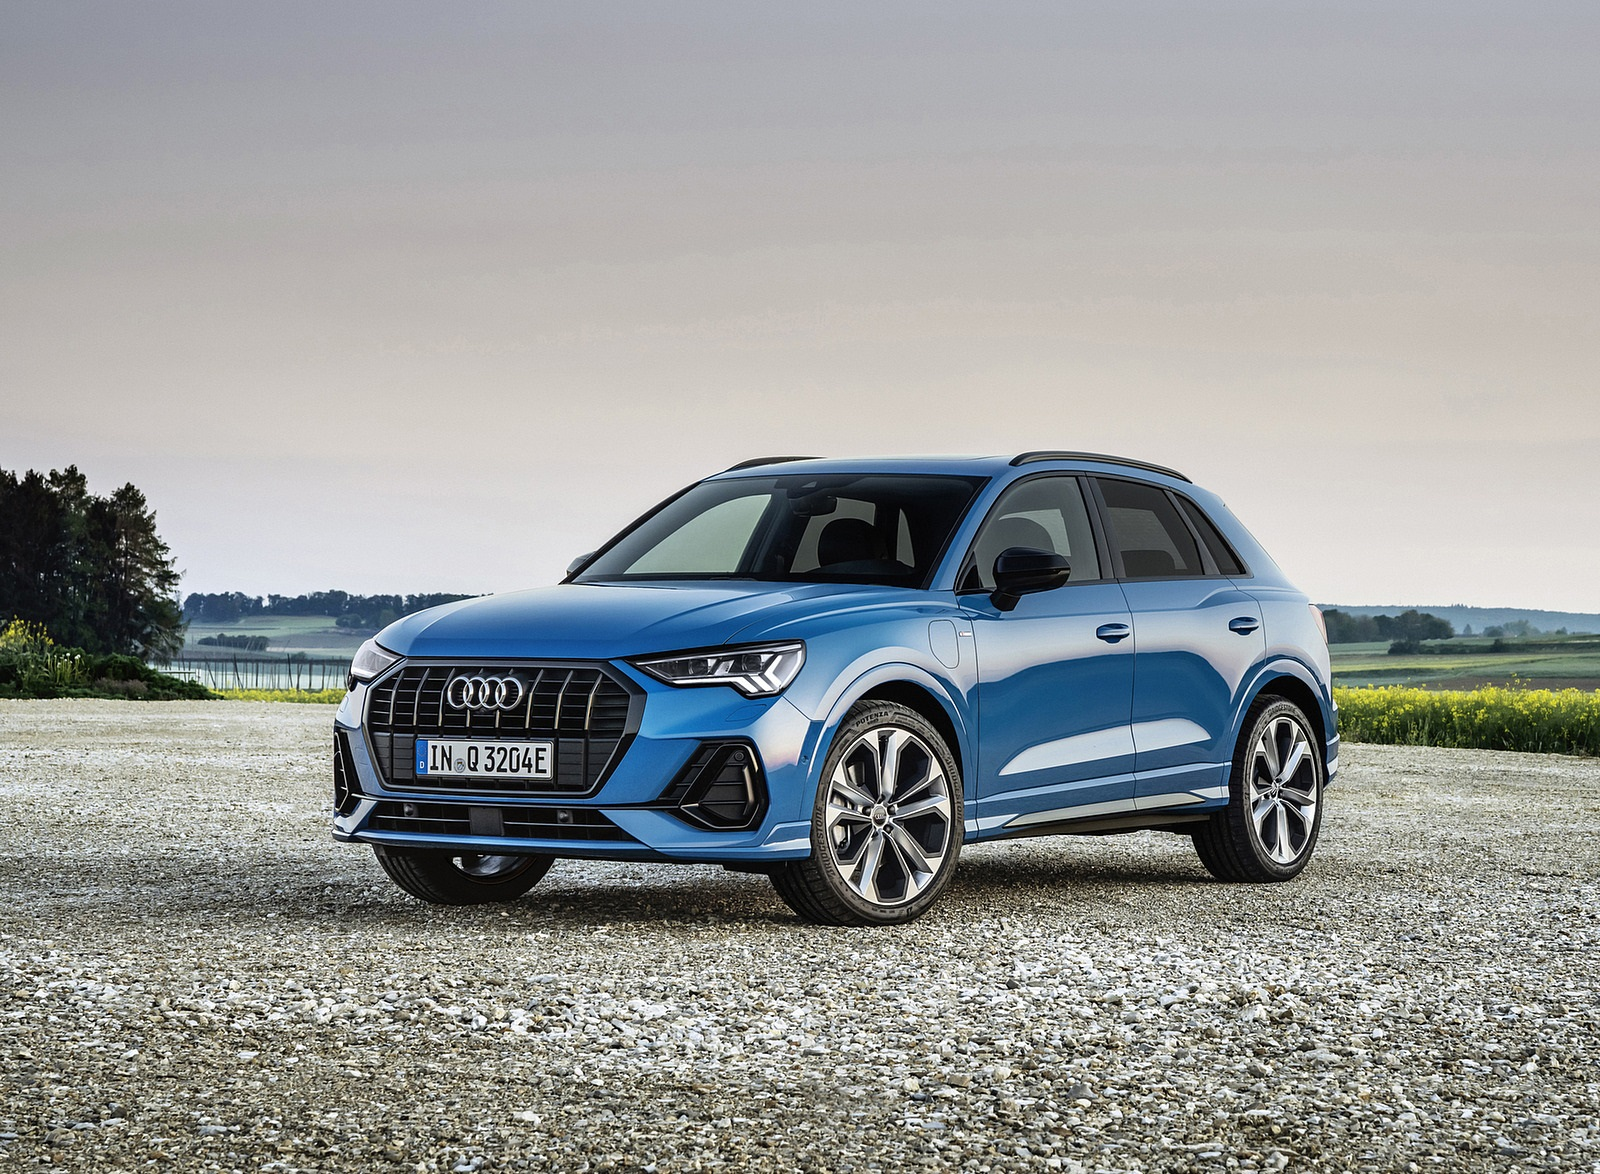 2021 Audi Q3 TFSI e Plug-In Hybrid (Color: Turbo Blue) Front Three-Quarter Wallpapers (8)